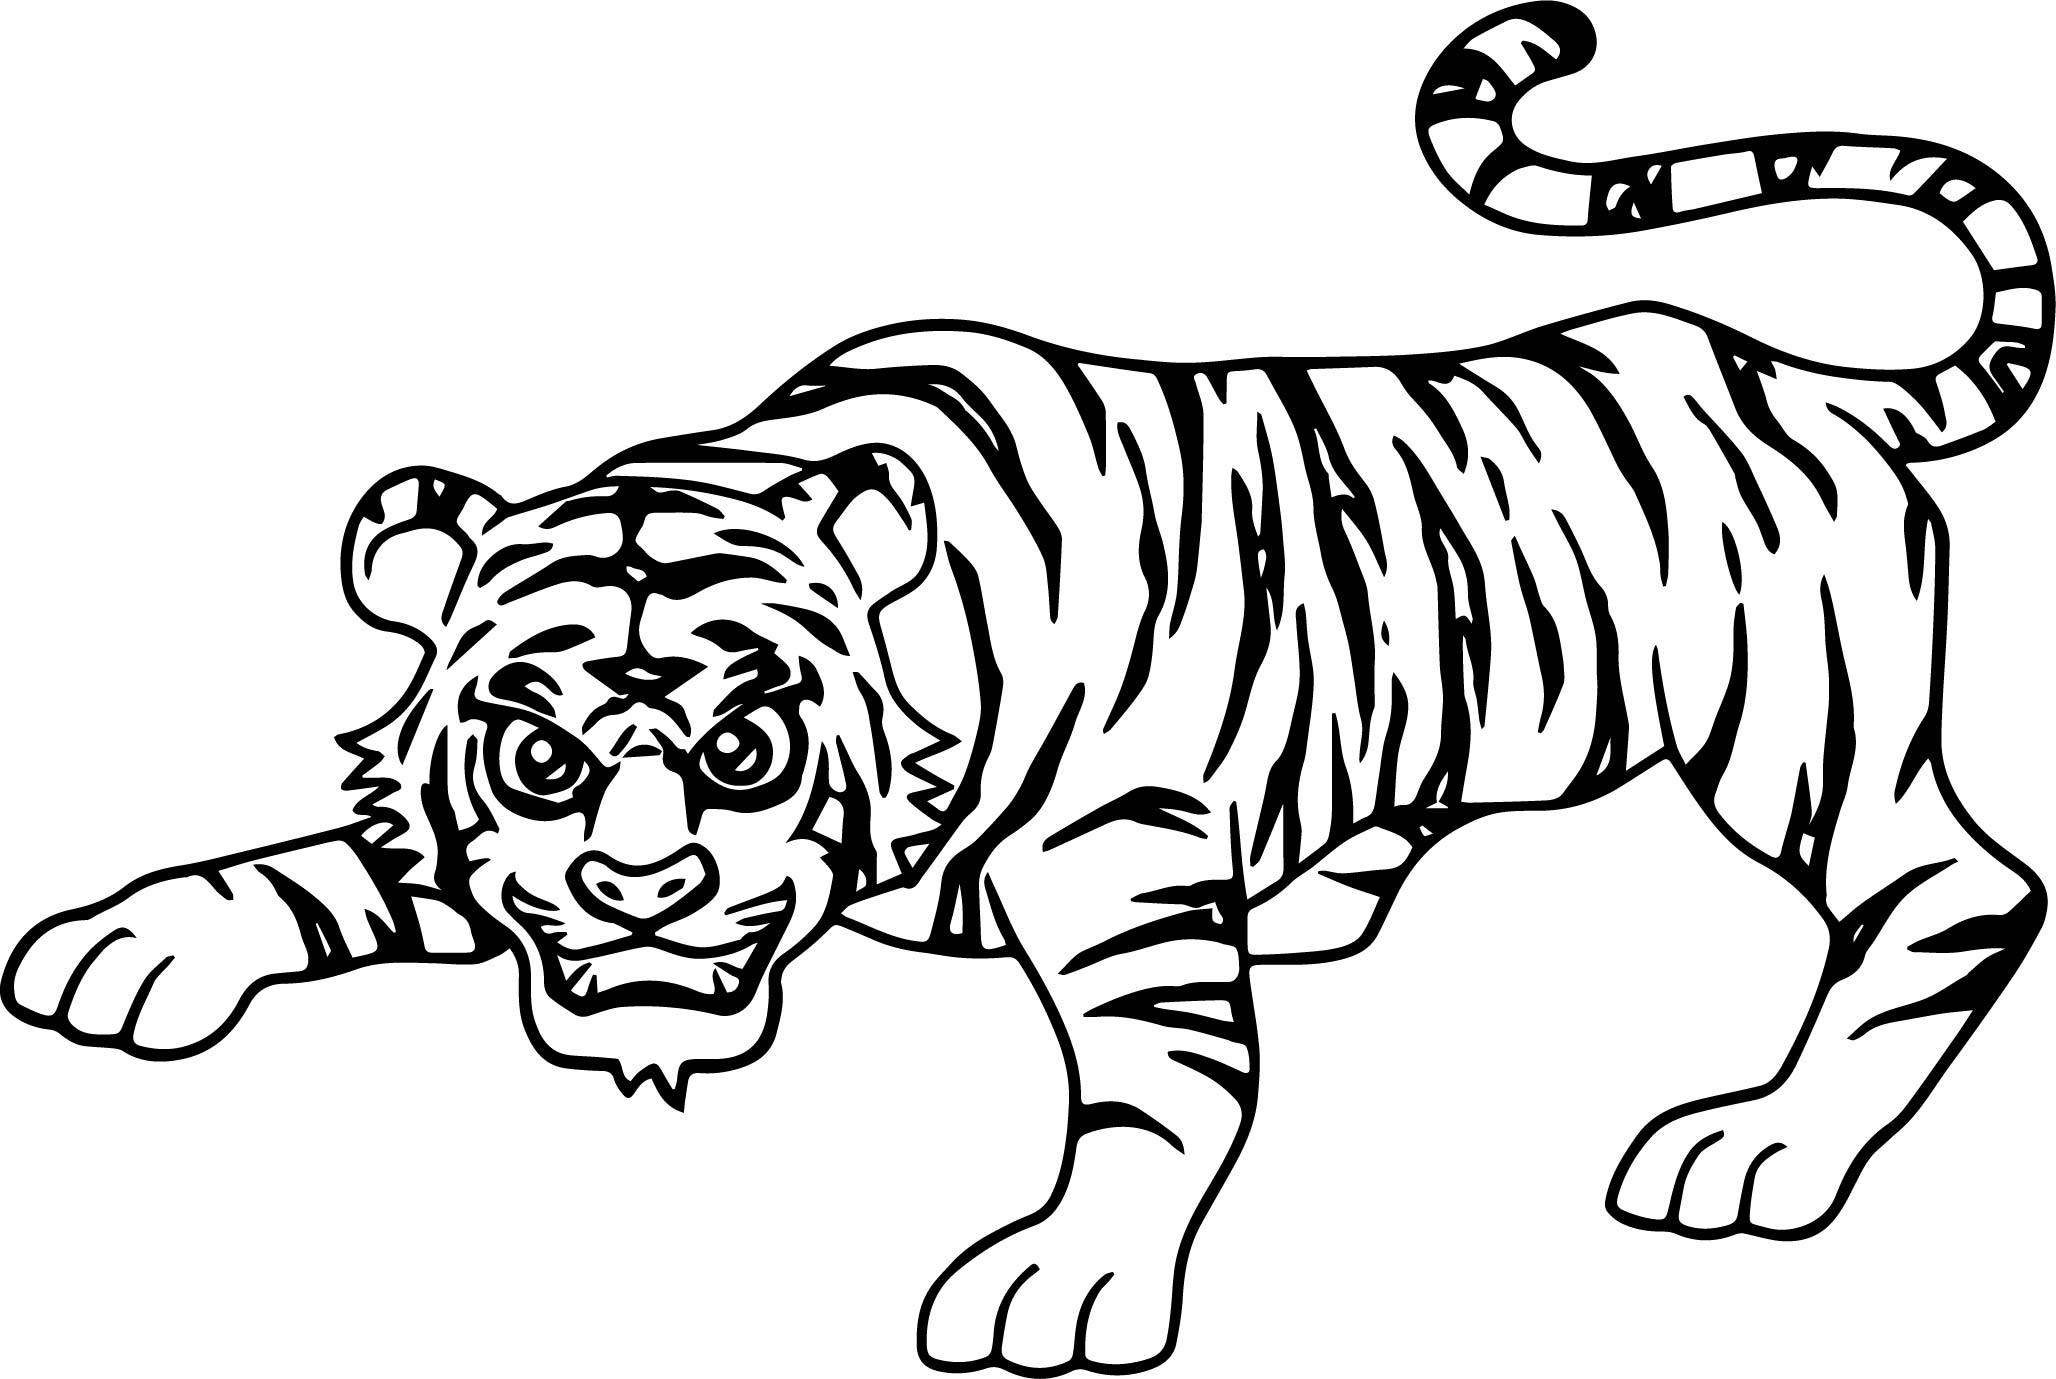 2056x1379 Smart Attack Tiger Coloring Page Wecoloringpage